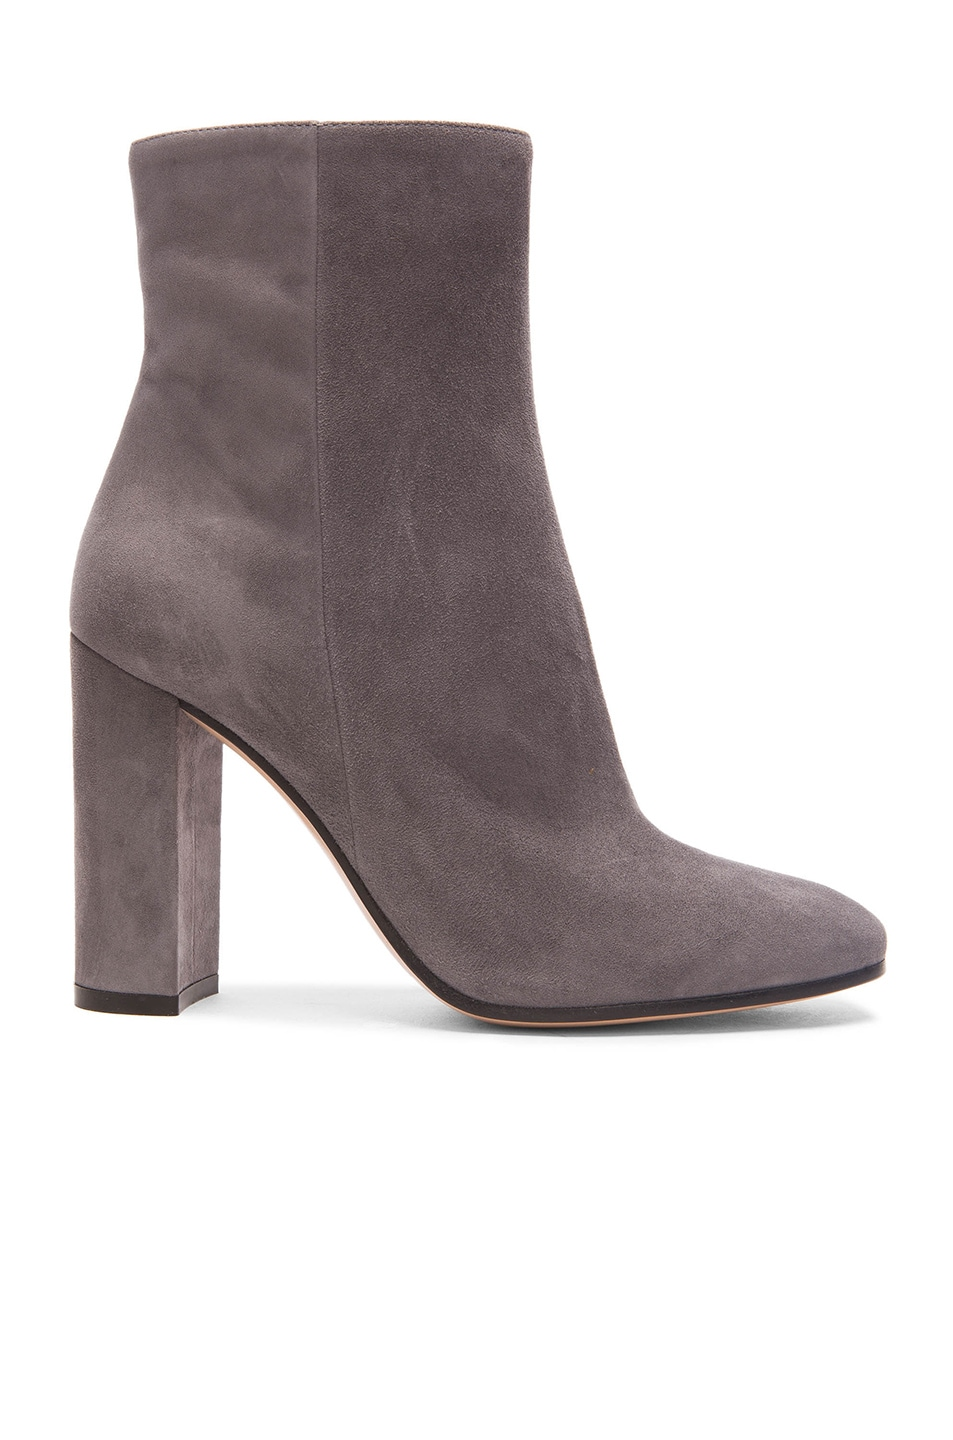 Image 1 of Gianvito Rossi Suede Booties in Lapis